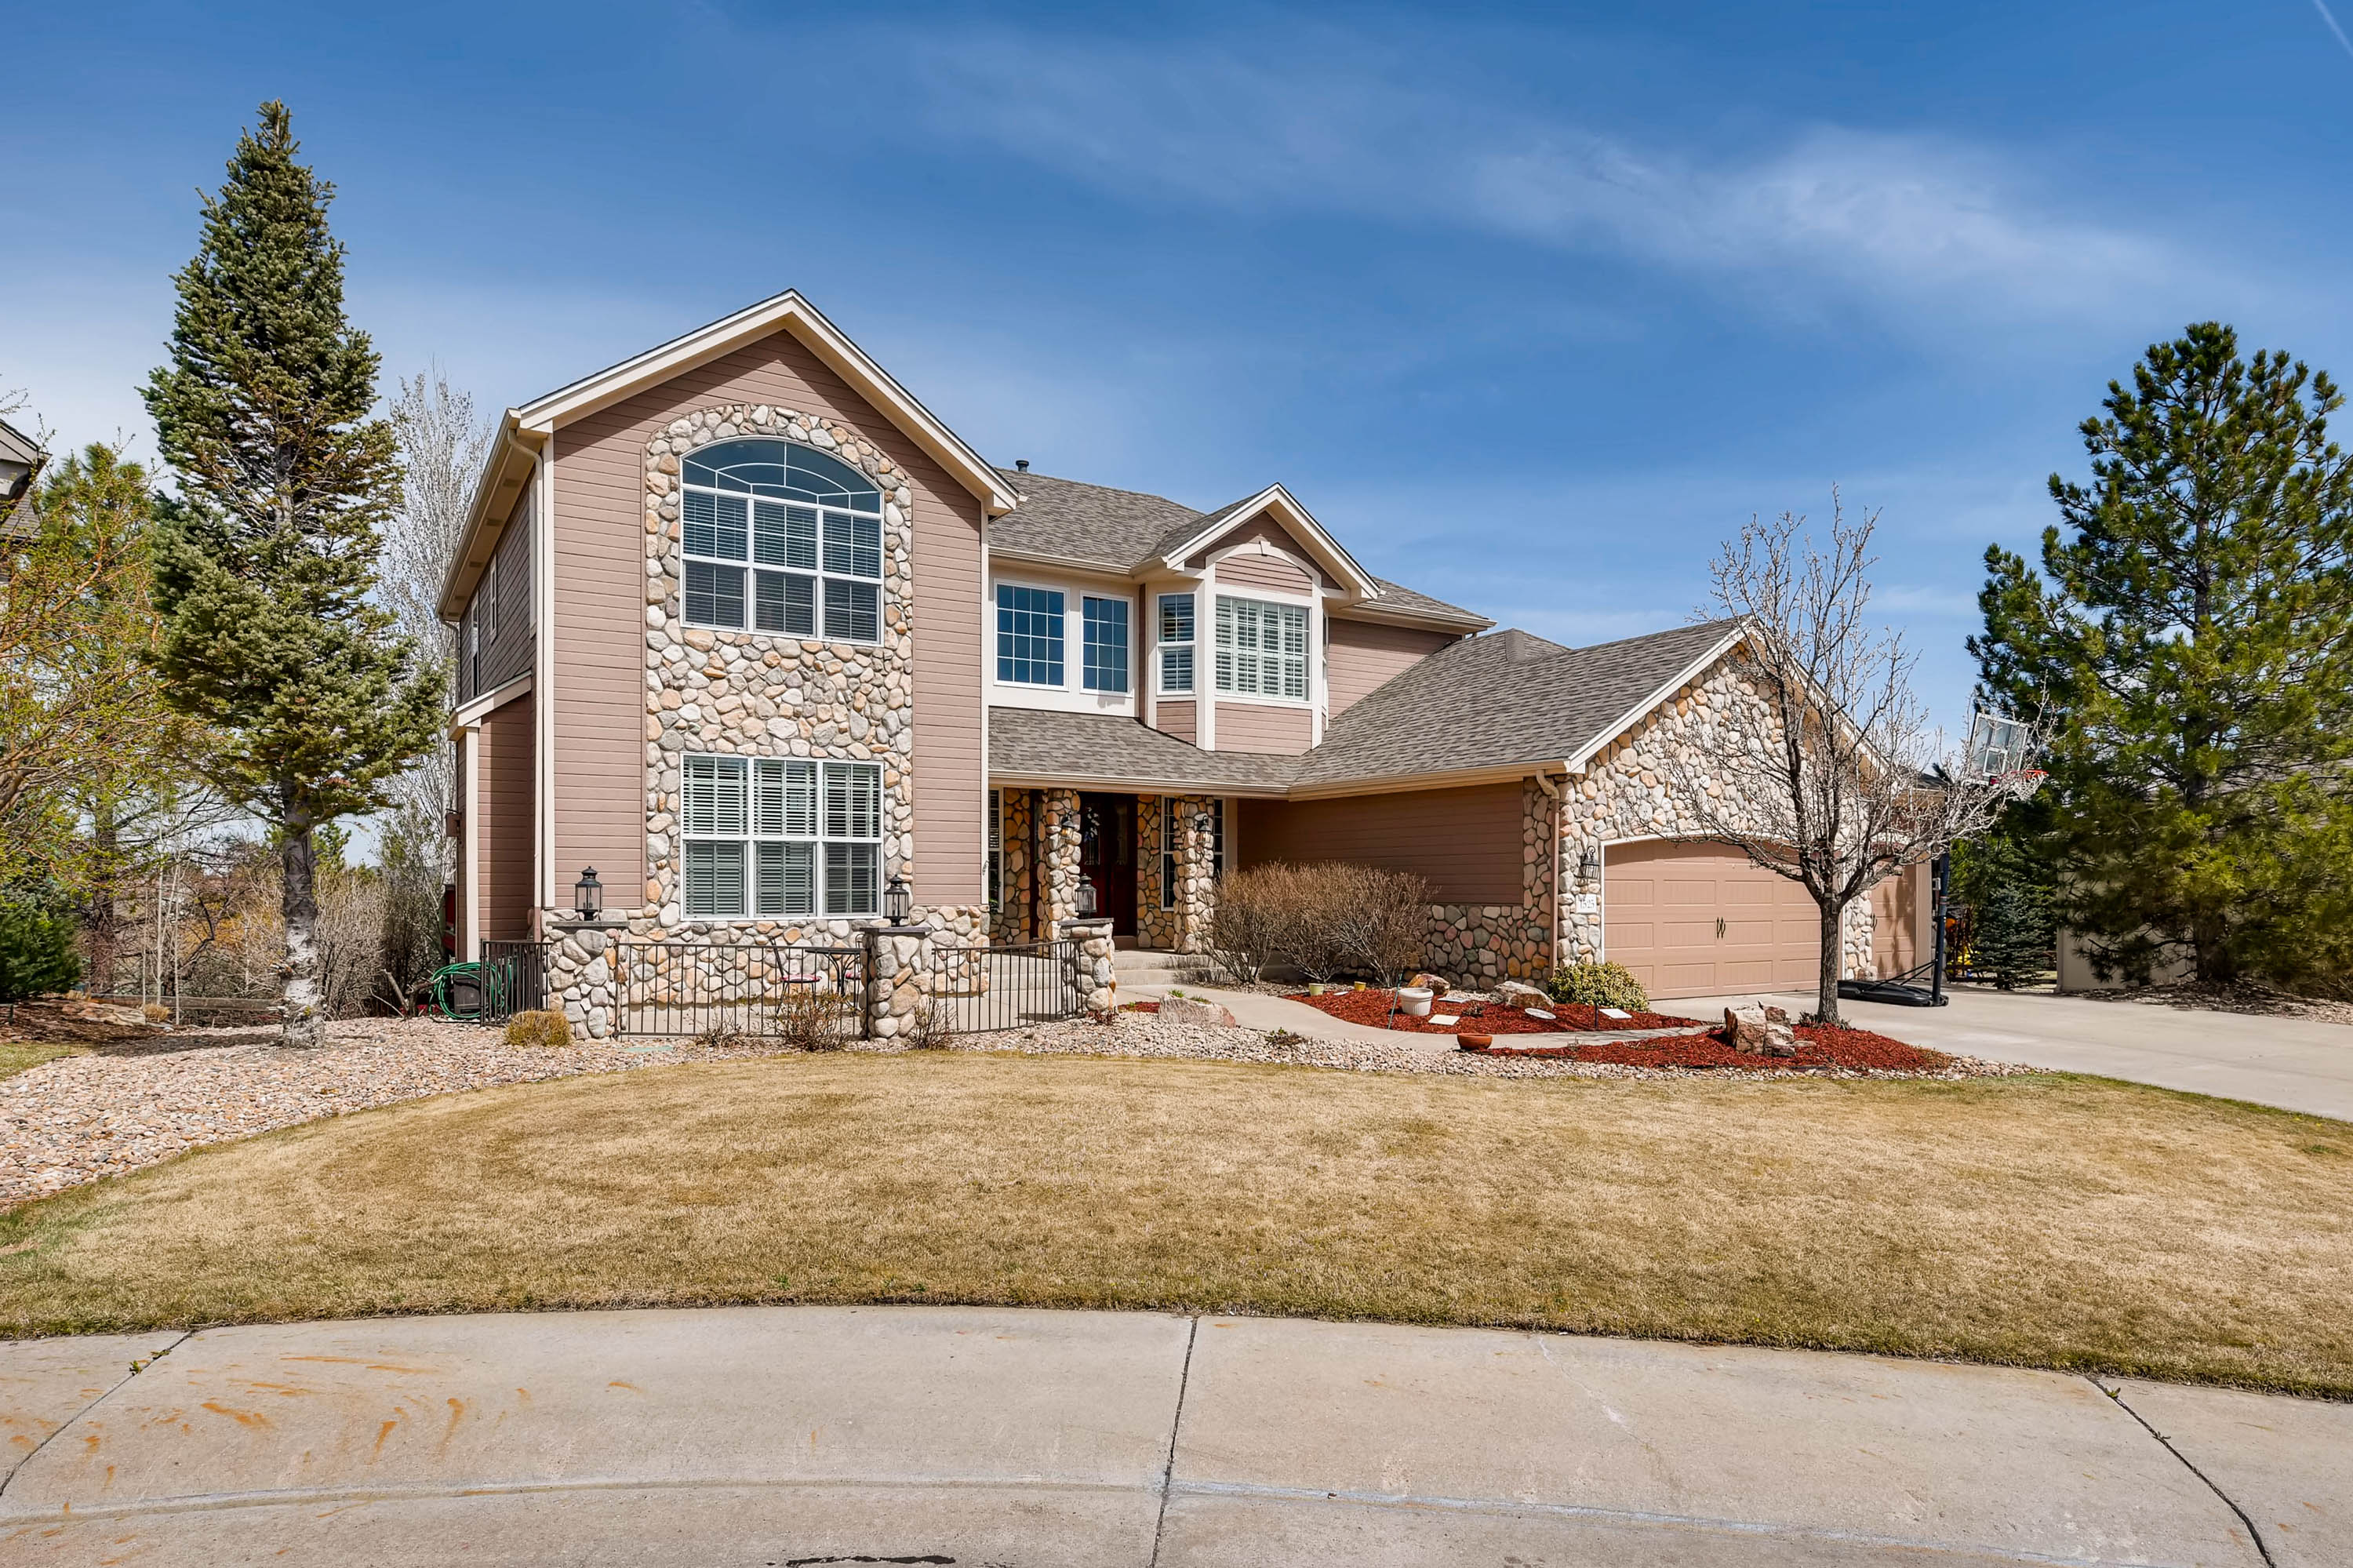 Weatherstone Semi-custom Home in Highlands Ranch, CO